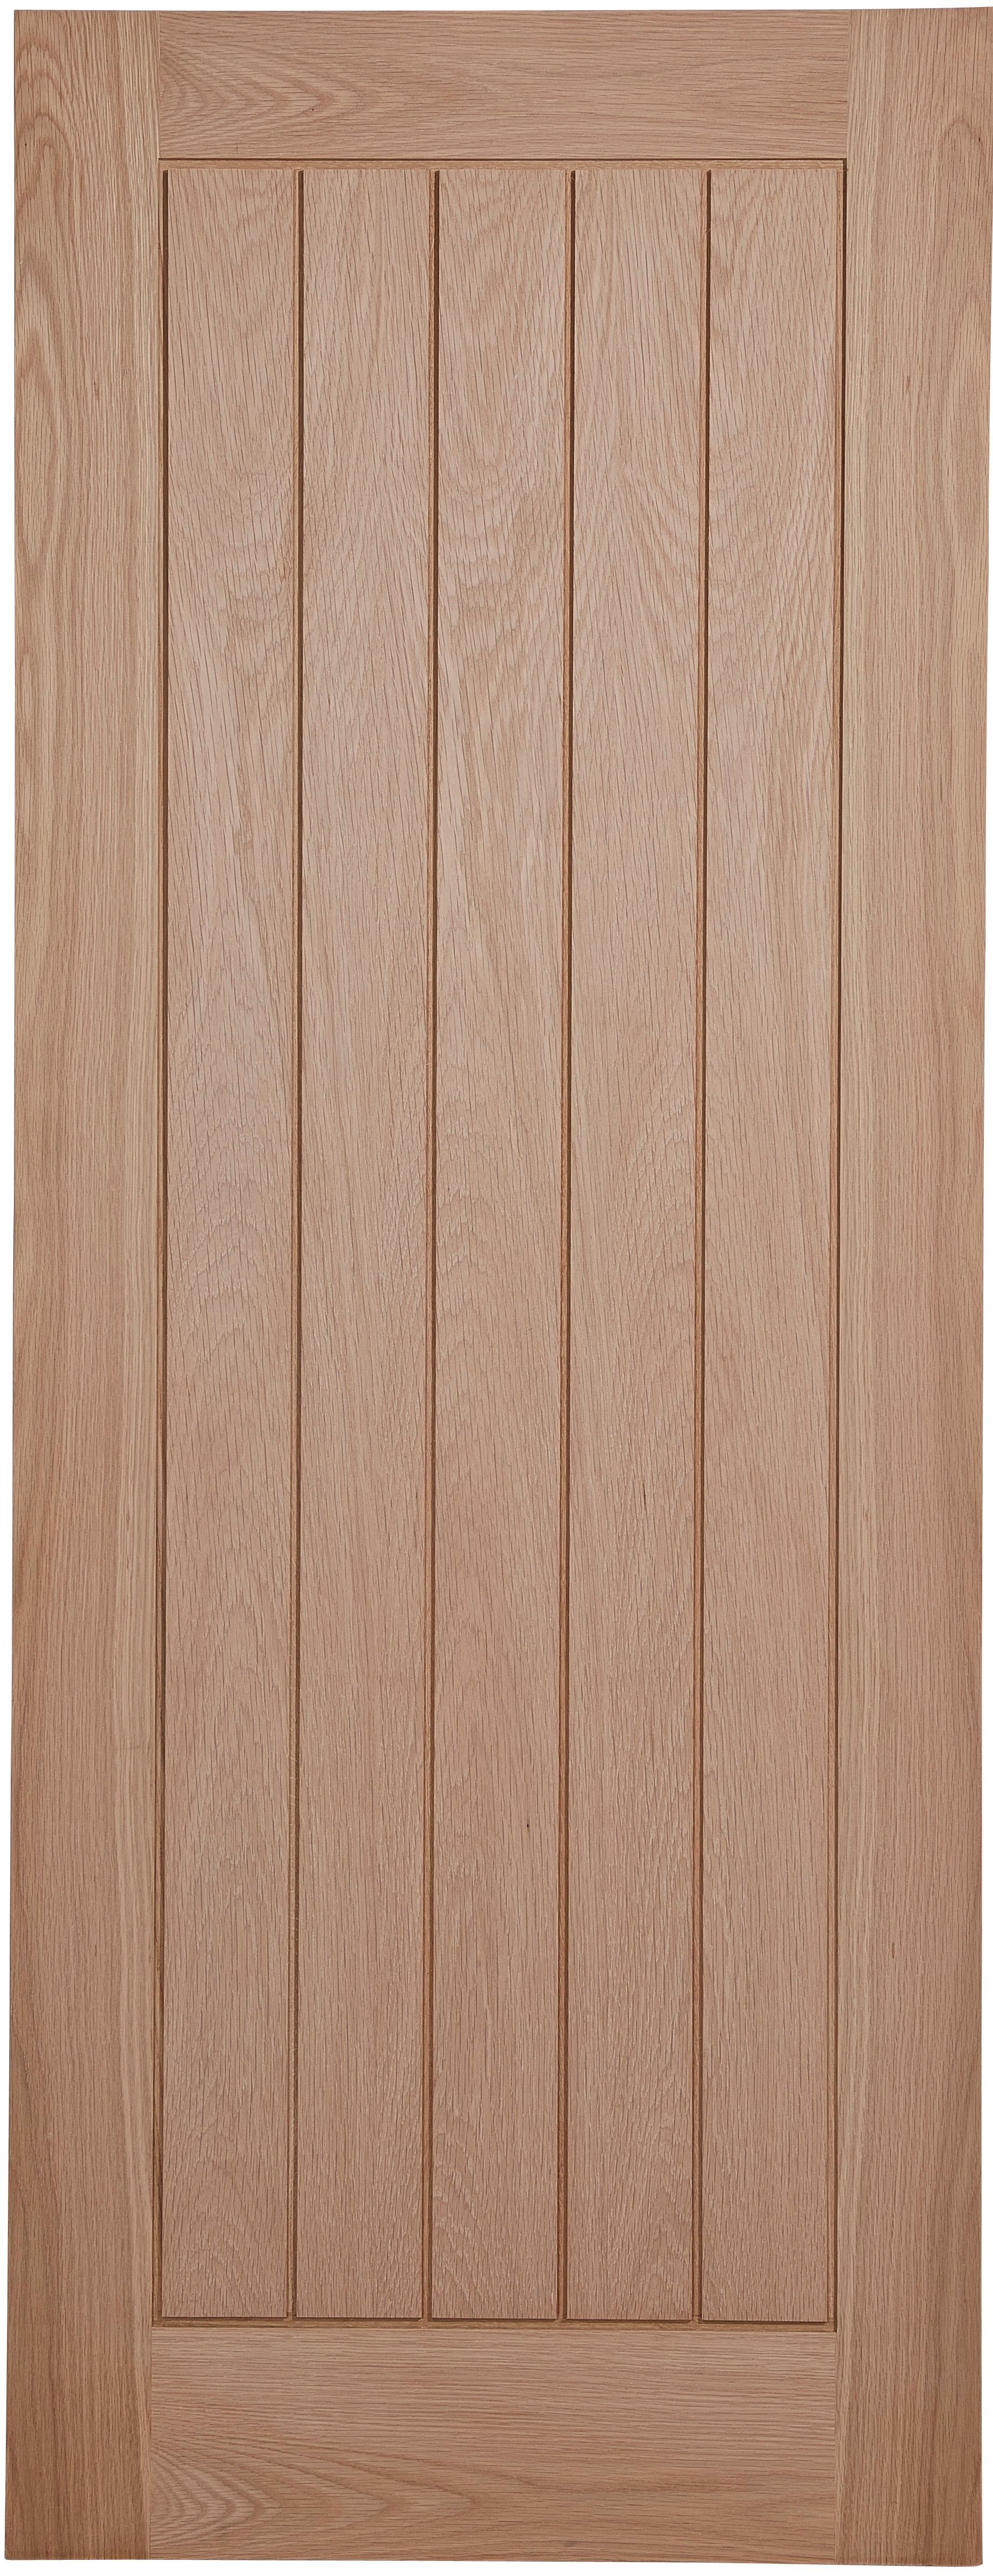 Cottage Panel Oak Veneer Unglazed Internal Fire Door, (h)1981mm (w)762mm